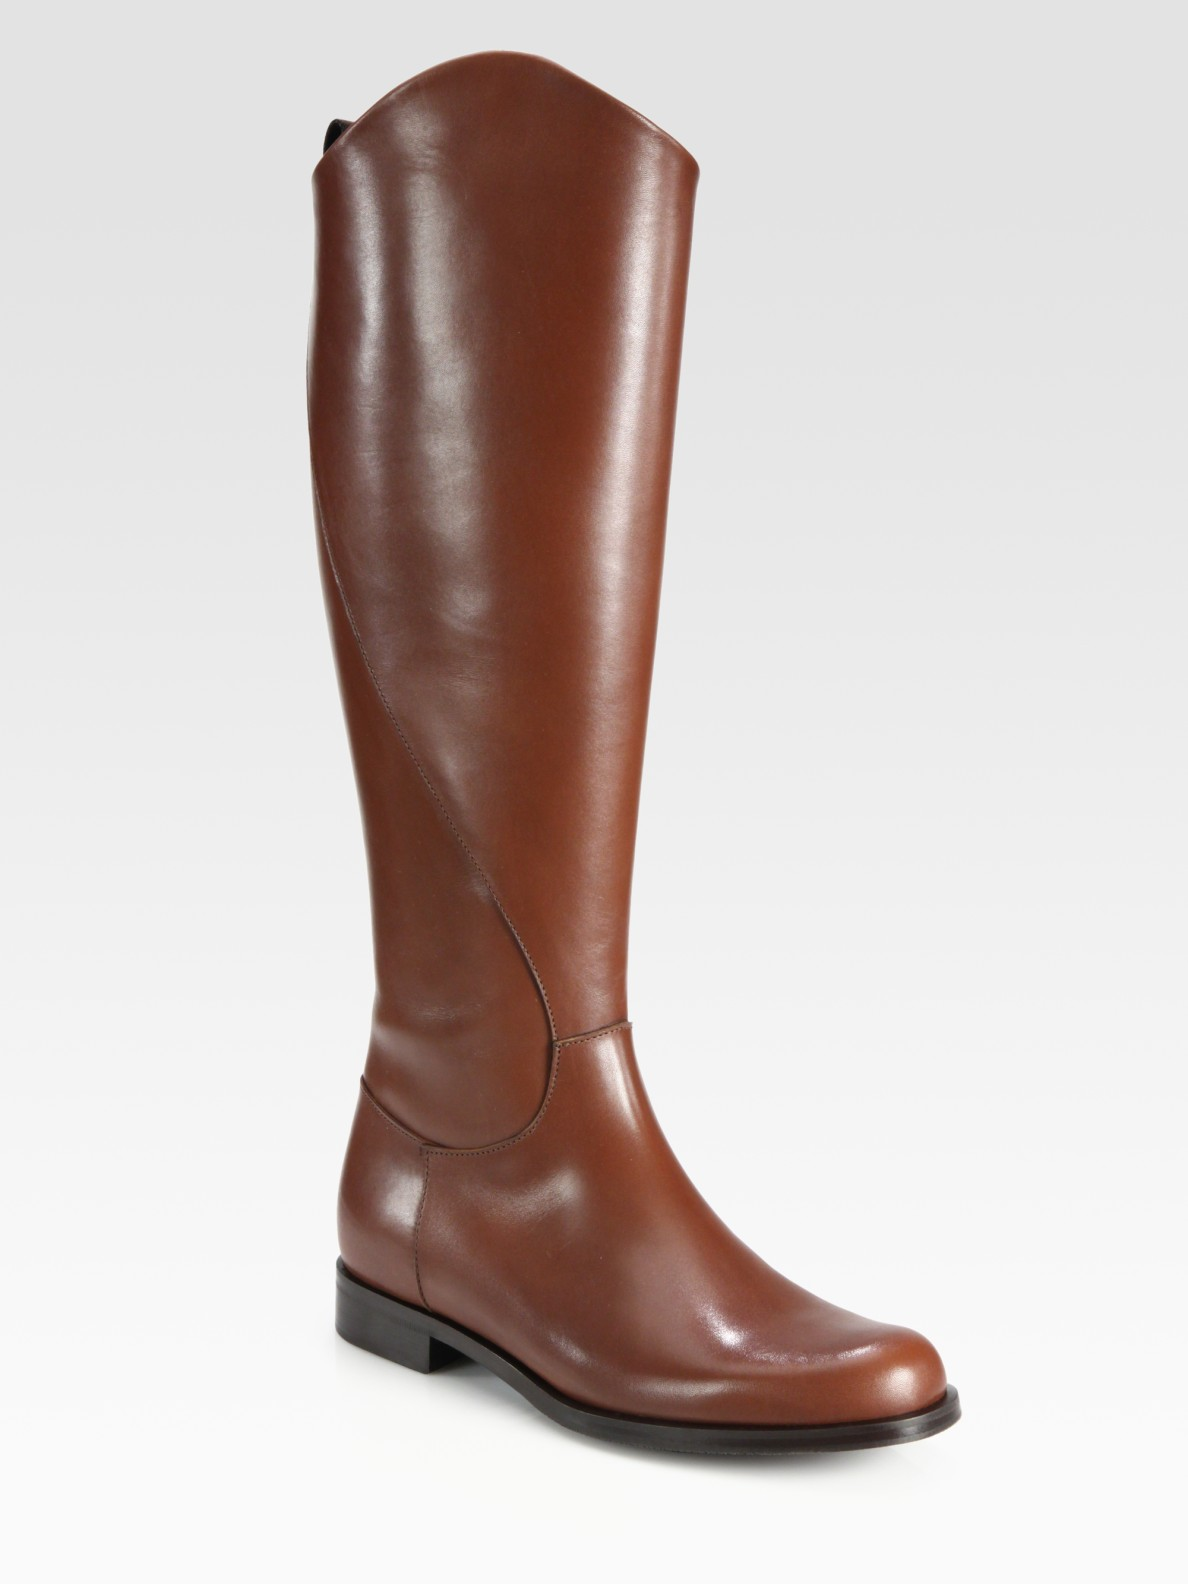 Leather fashion riding boots womens 85